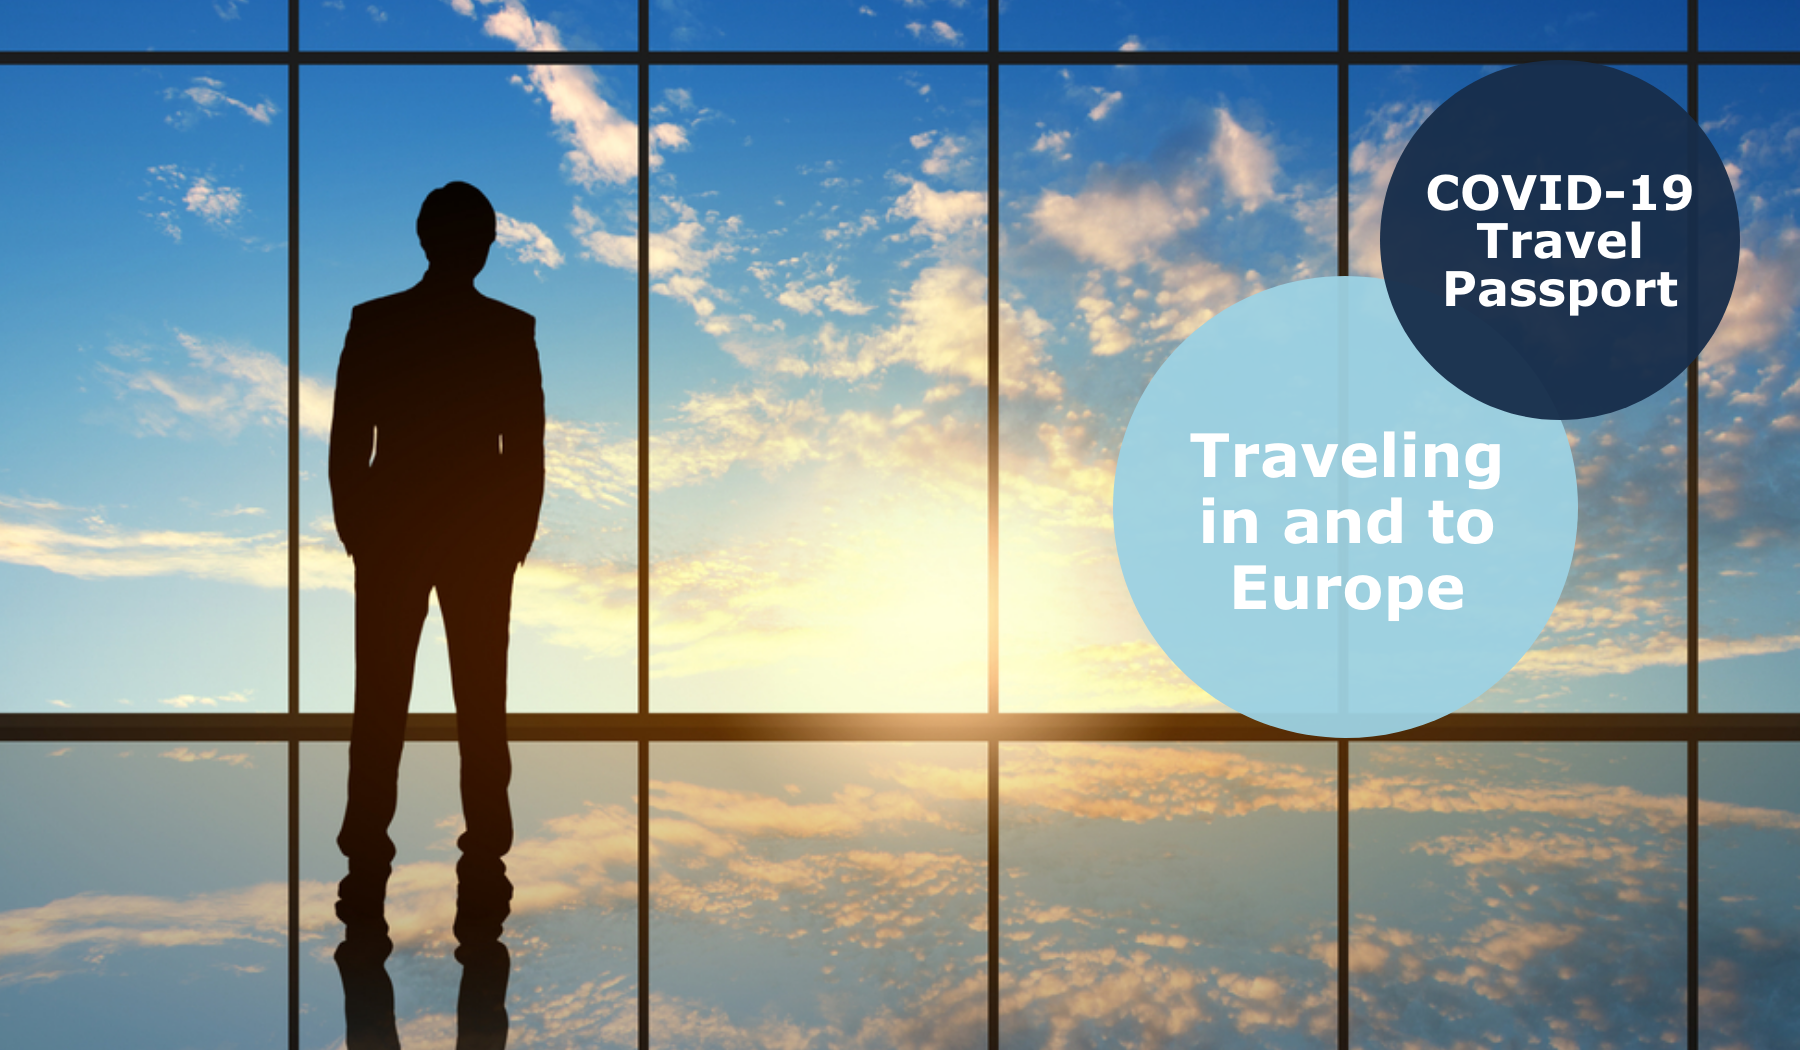 EU Covid-19 Travel certificate traveling in and to Europe